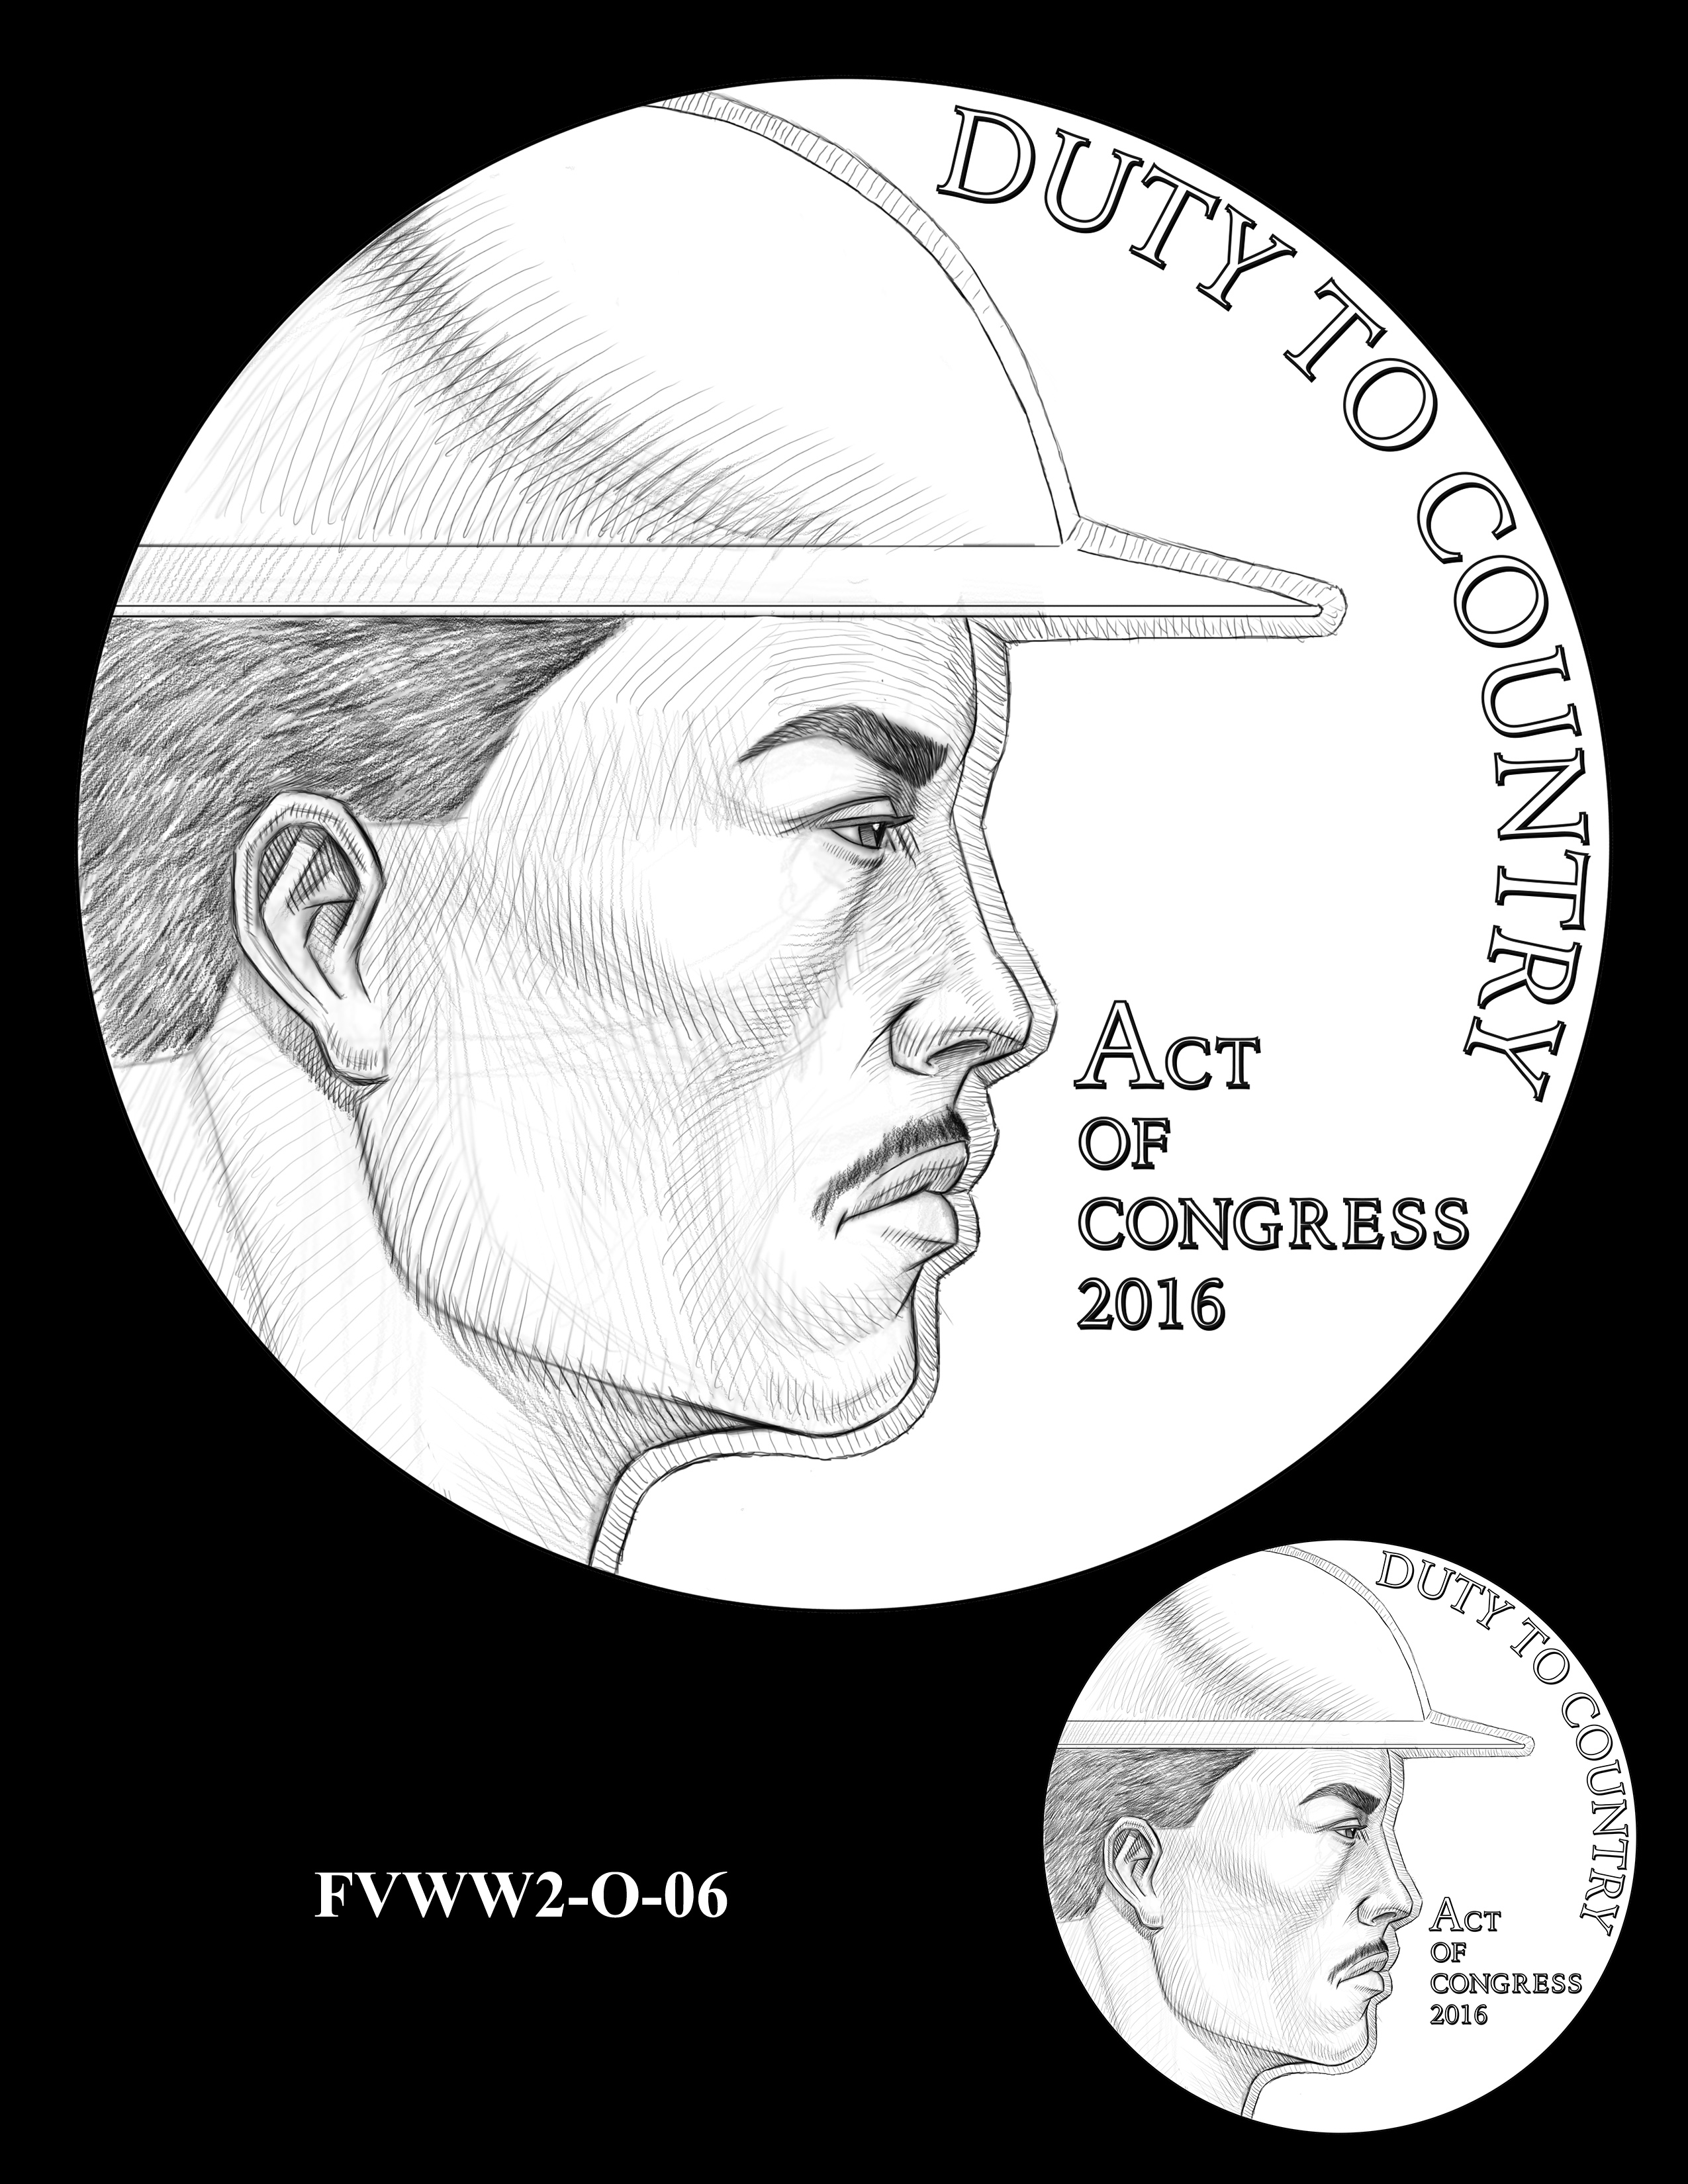 FVWW2-O-06 -- Filipino Veterans of World War II Congressional Gold Medal